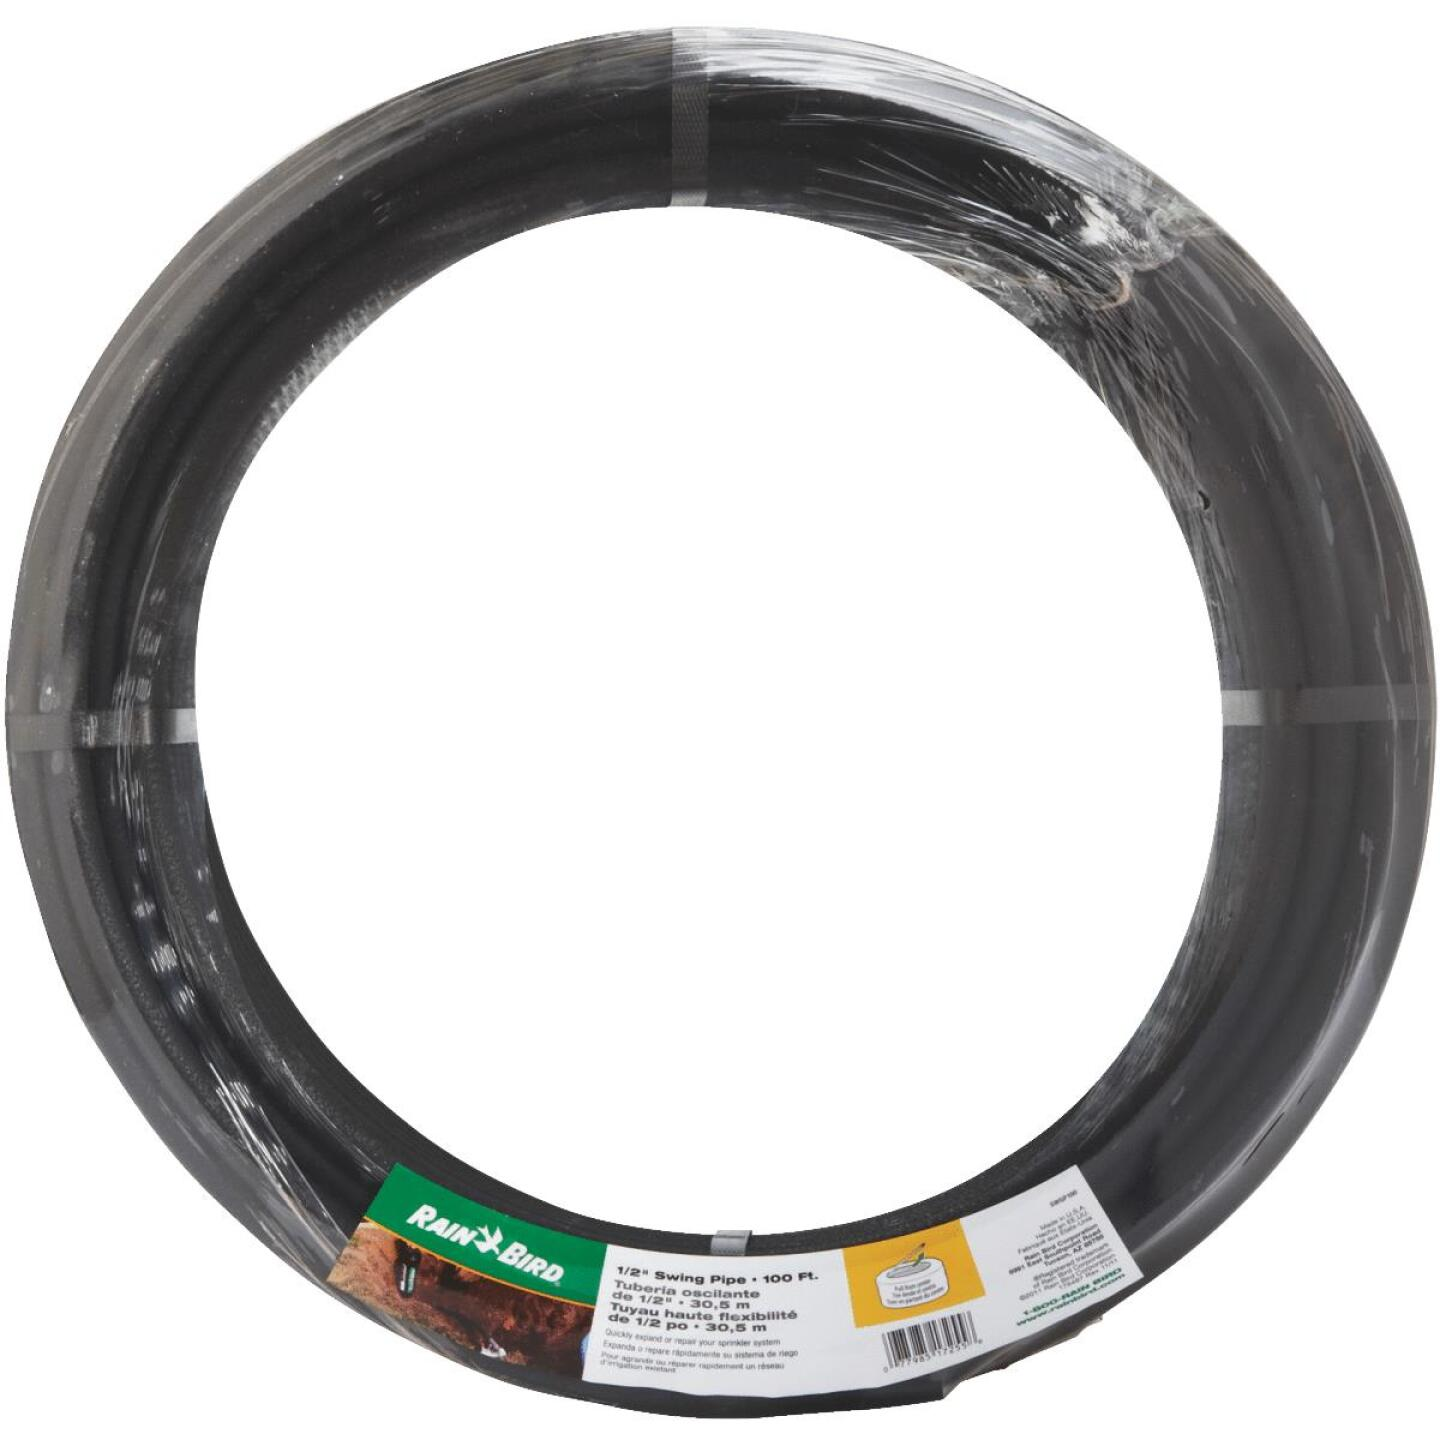 Rain Bird 100 Ft. L. x 1/2 In. Dia. Polyethylene Tubing Image 4